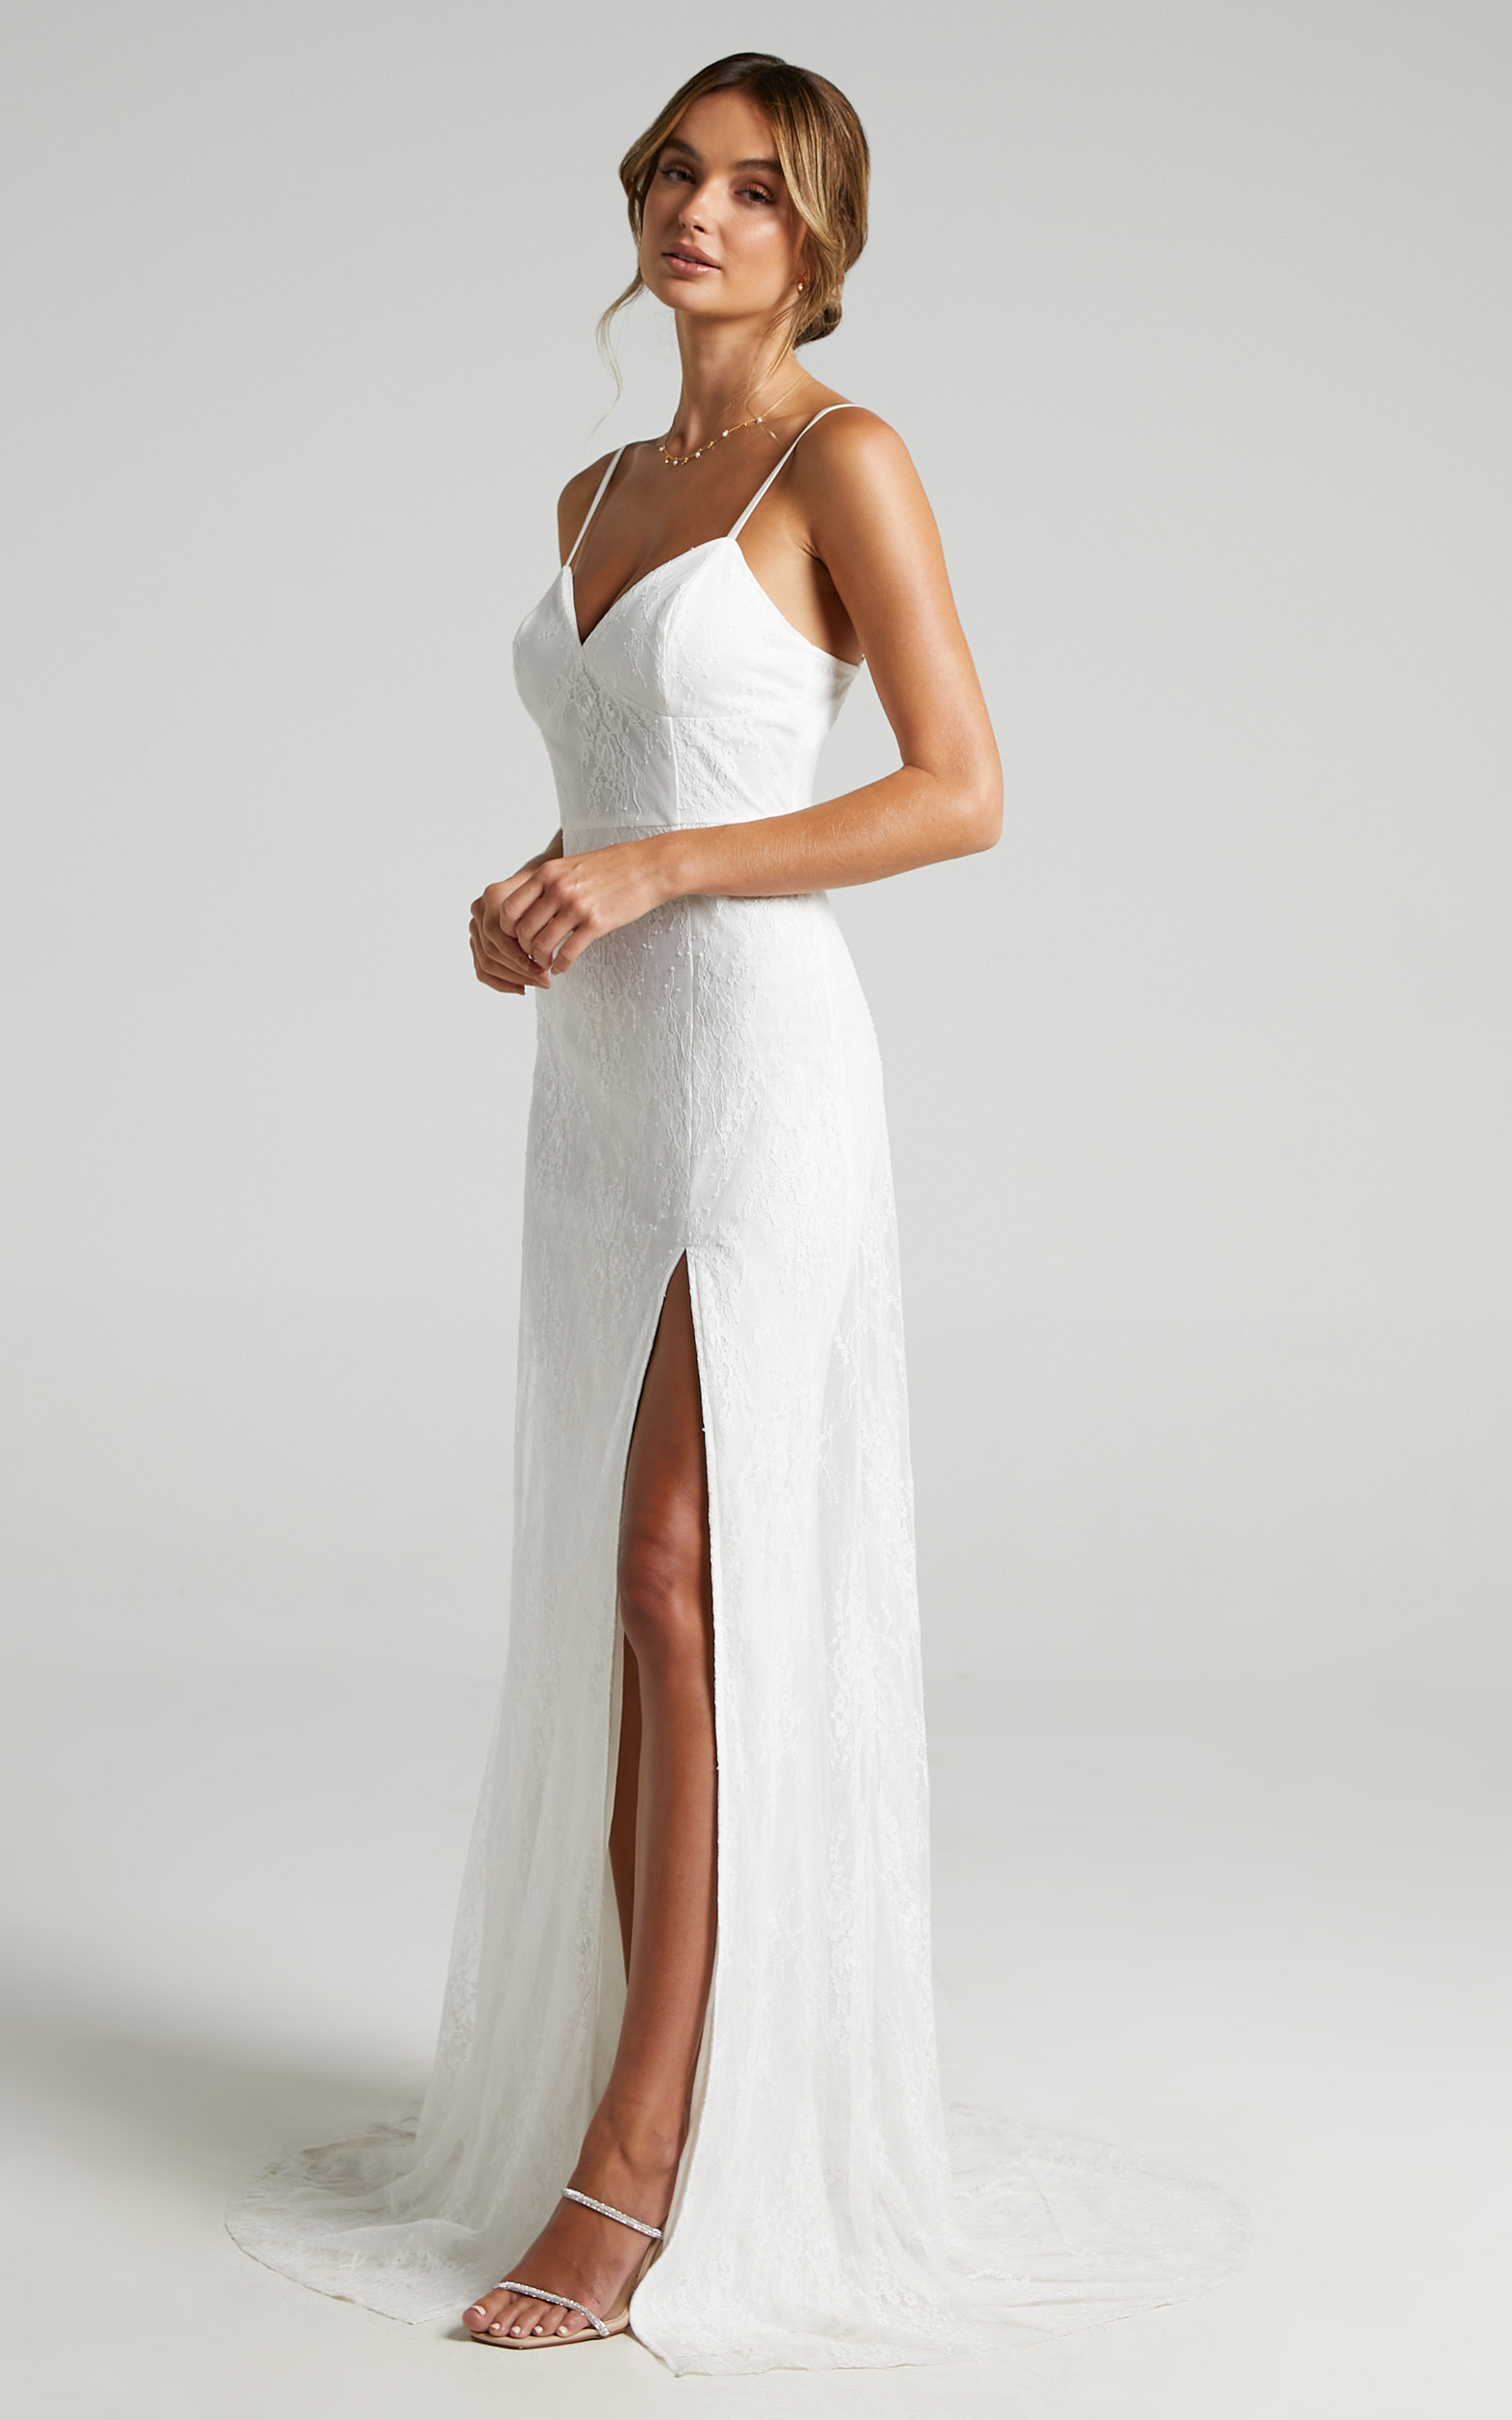 Love On Top Gown in White Lace - 06, WHT1, hi-res image number null